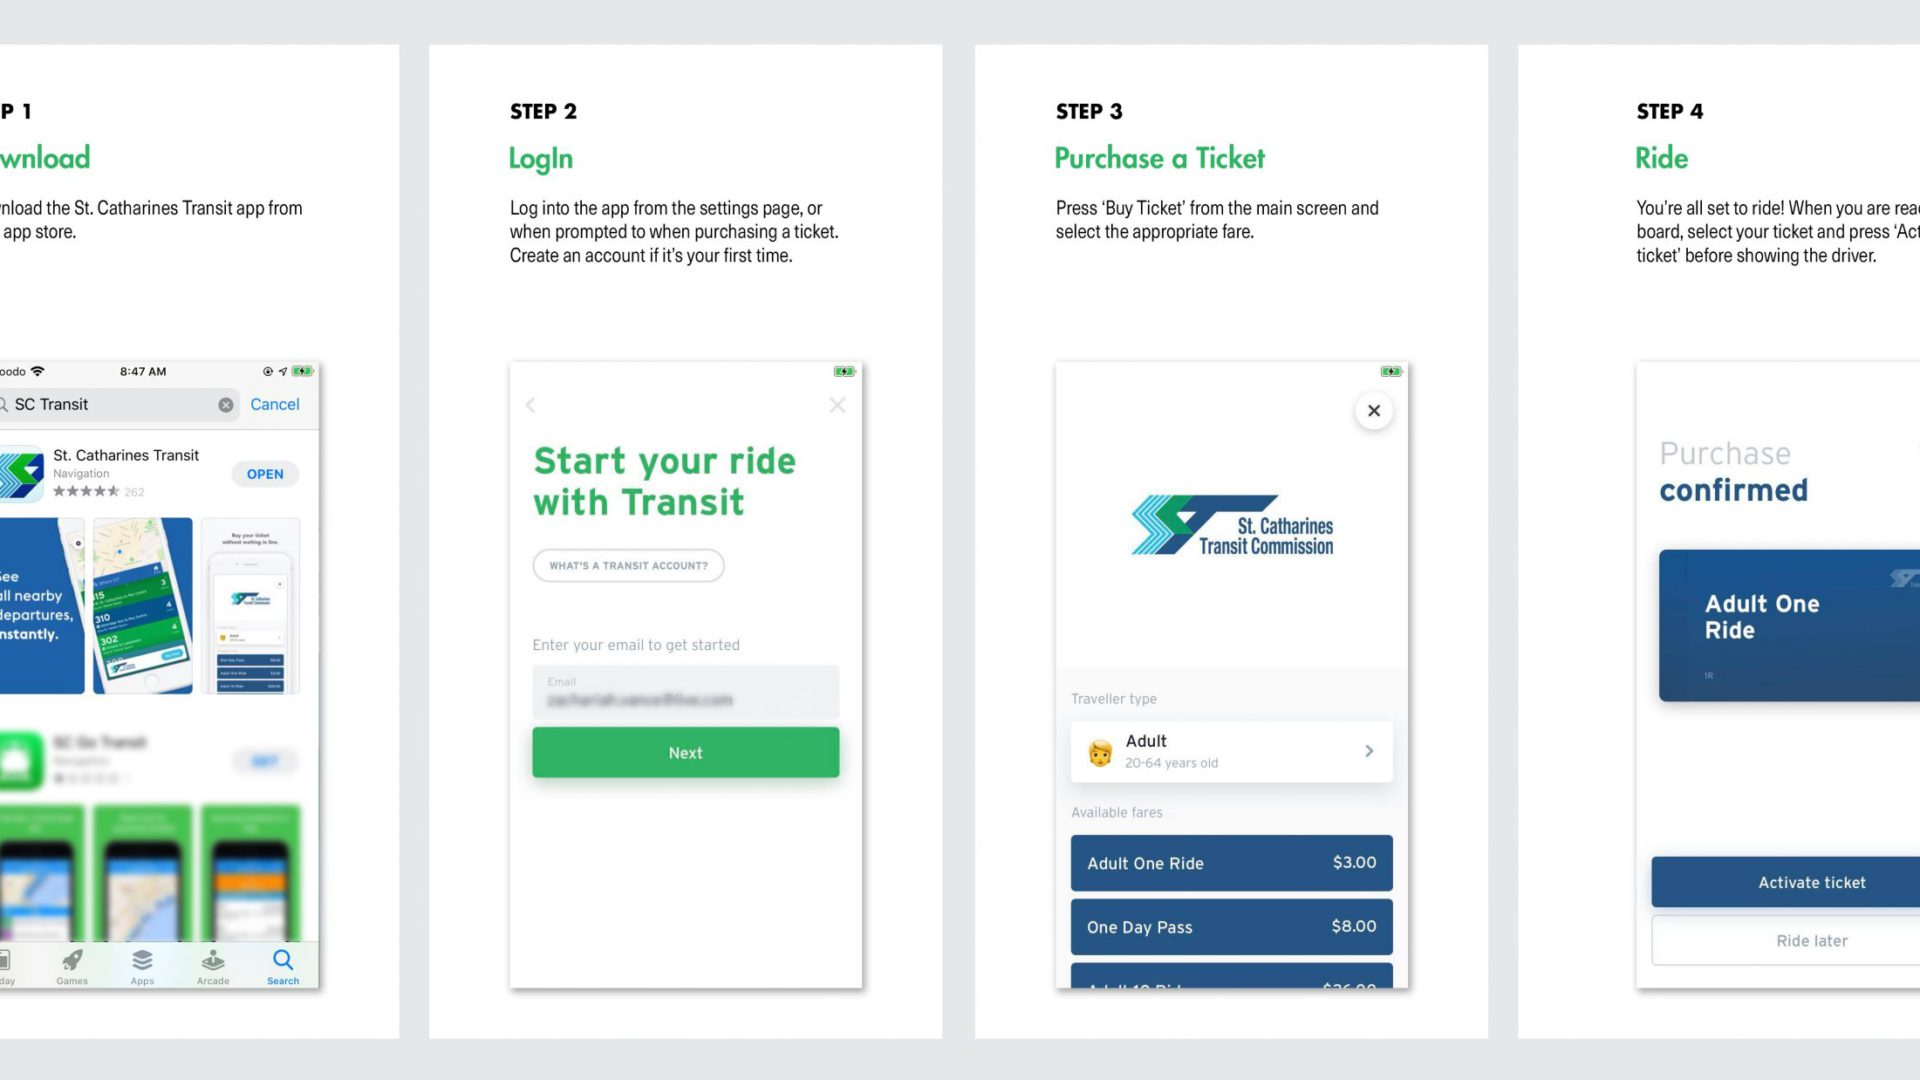 St Catharines Transit App ticket purchasing guide.